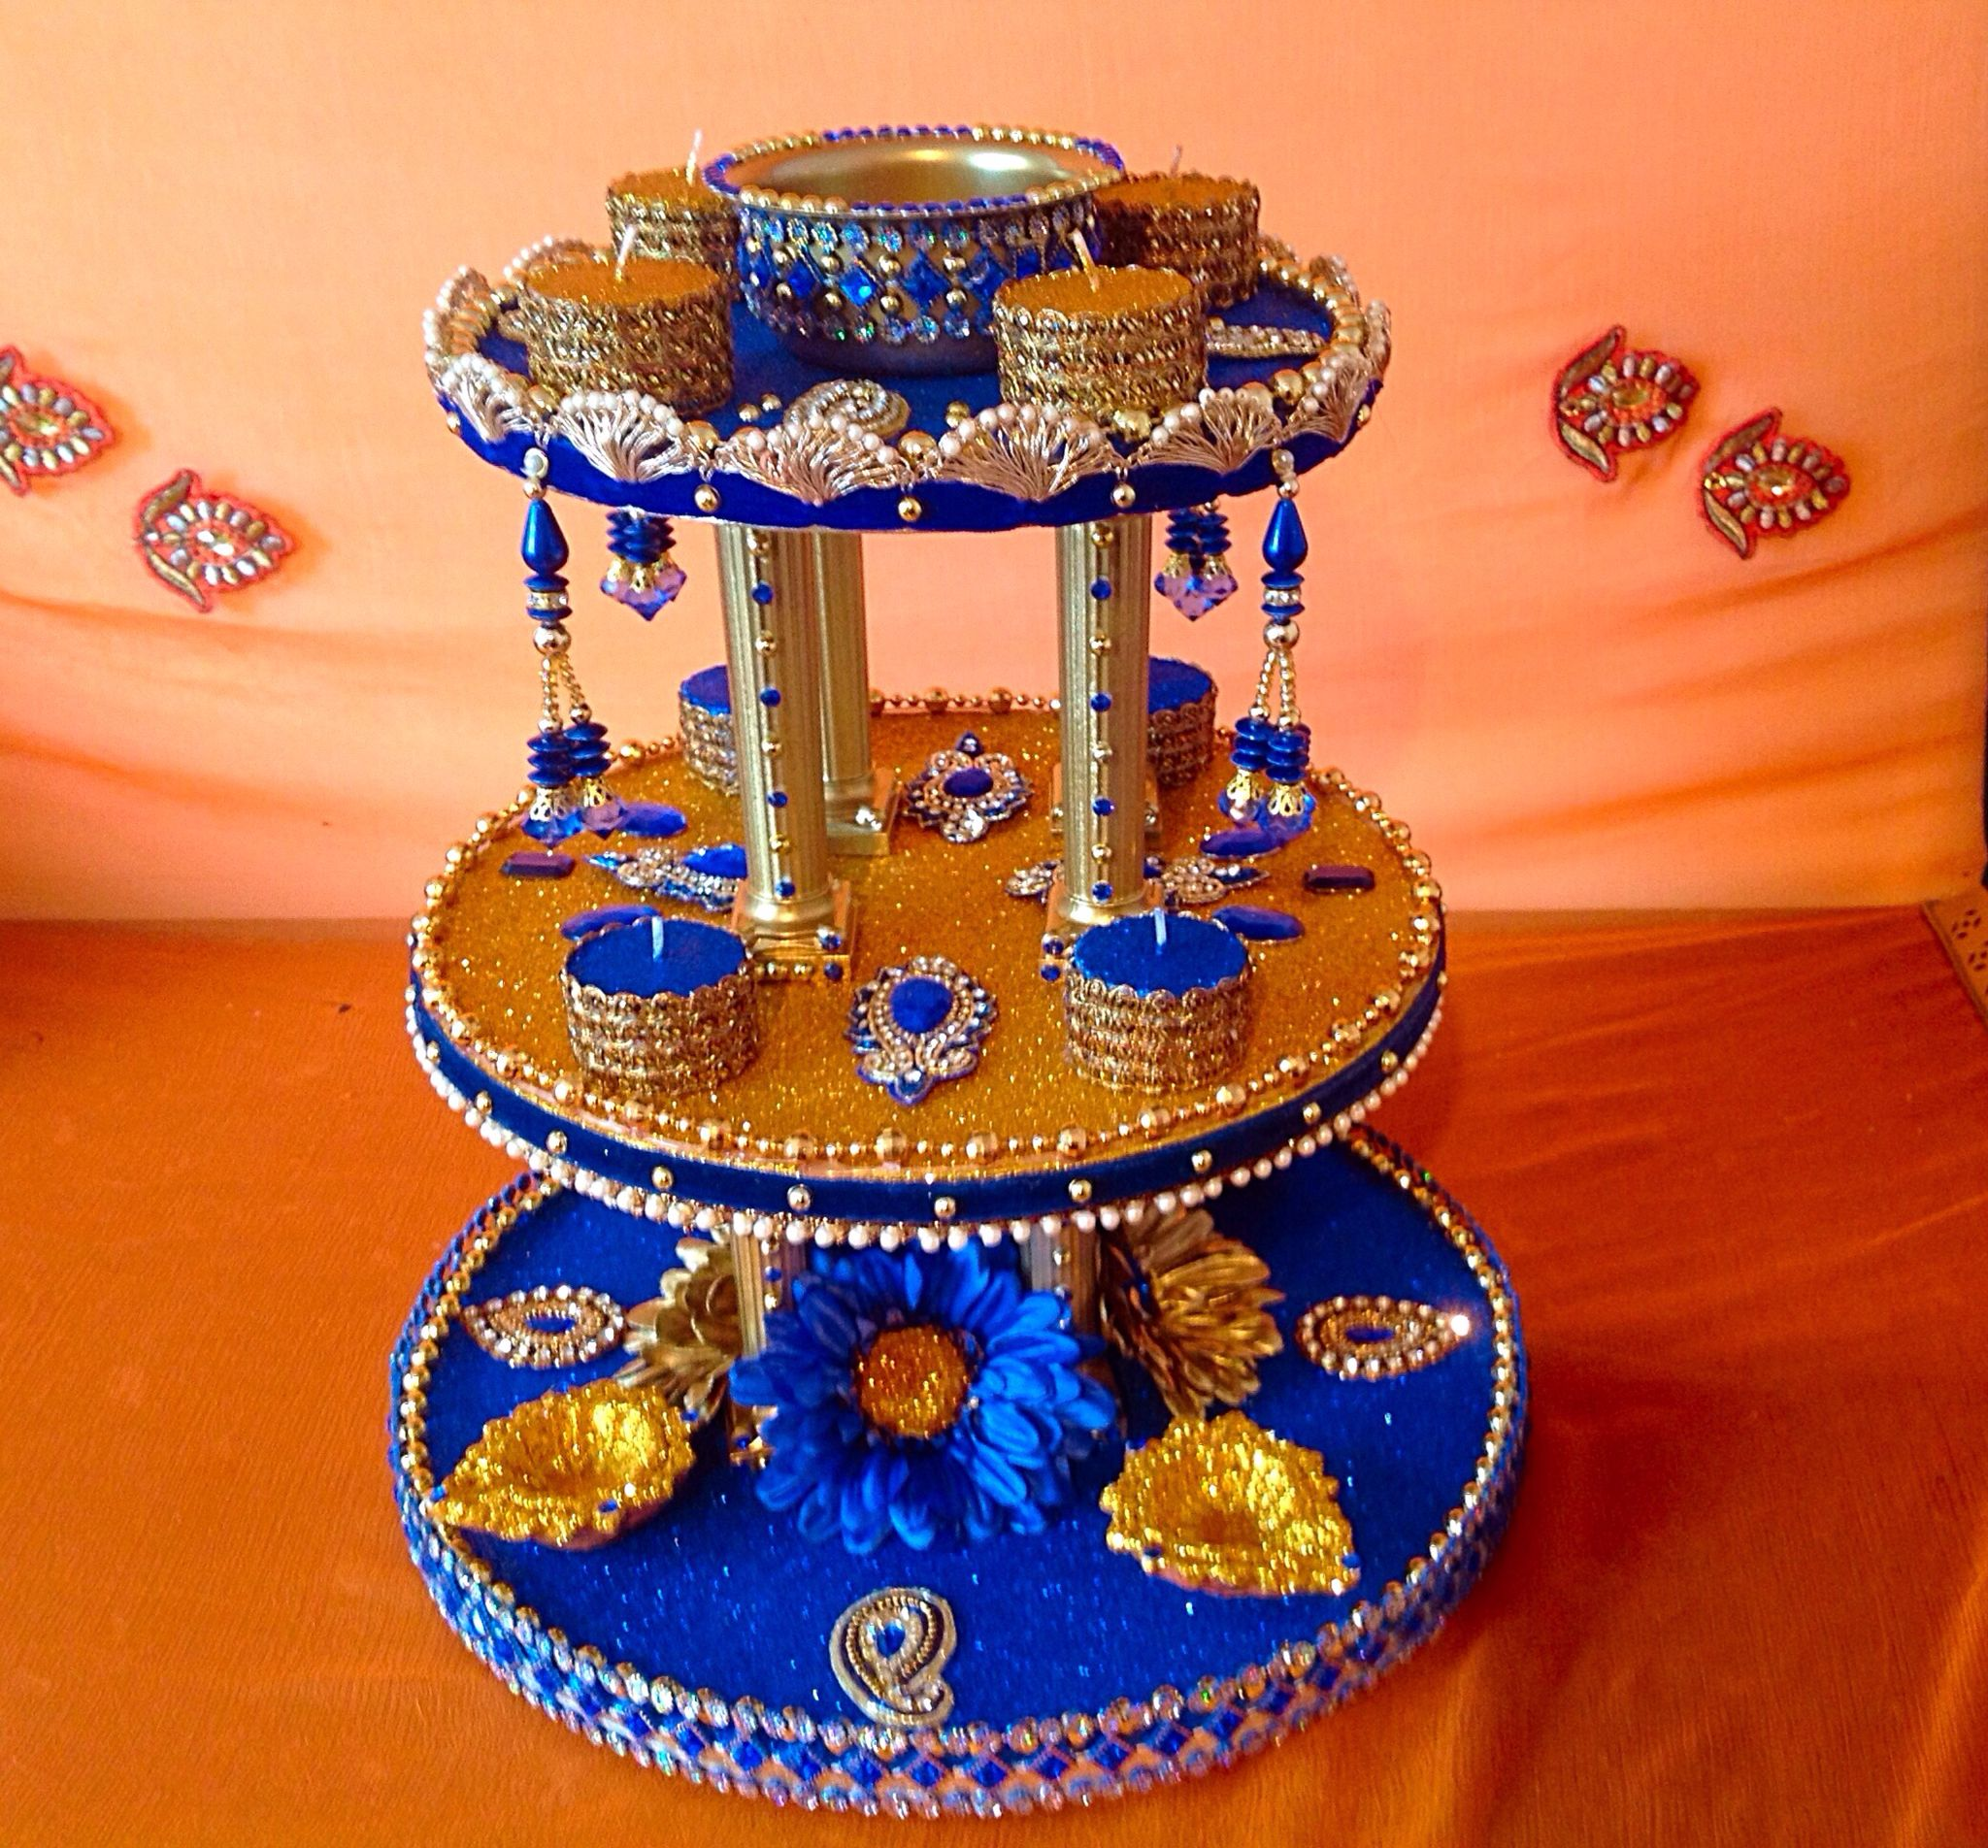 Indian Wedding Tray Decoration: The Show Stopper Mehndi Plate, See My Facebook Page Www